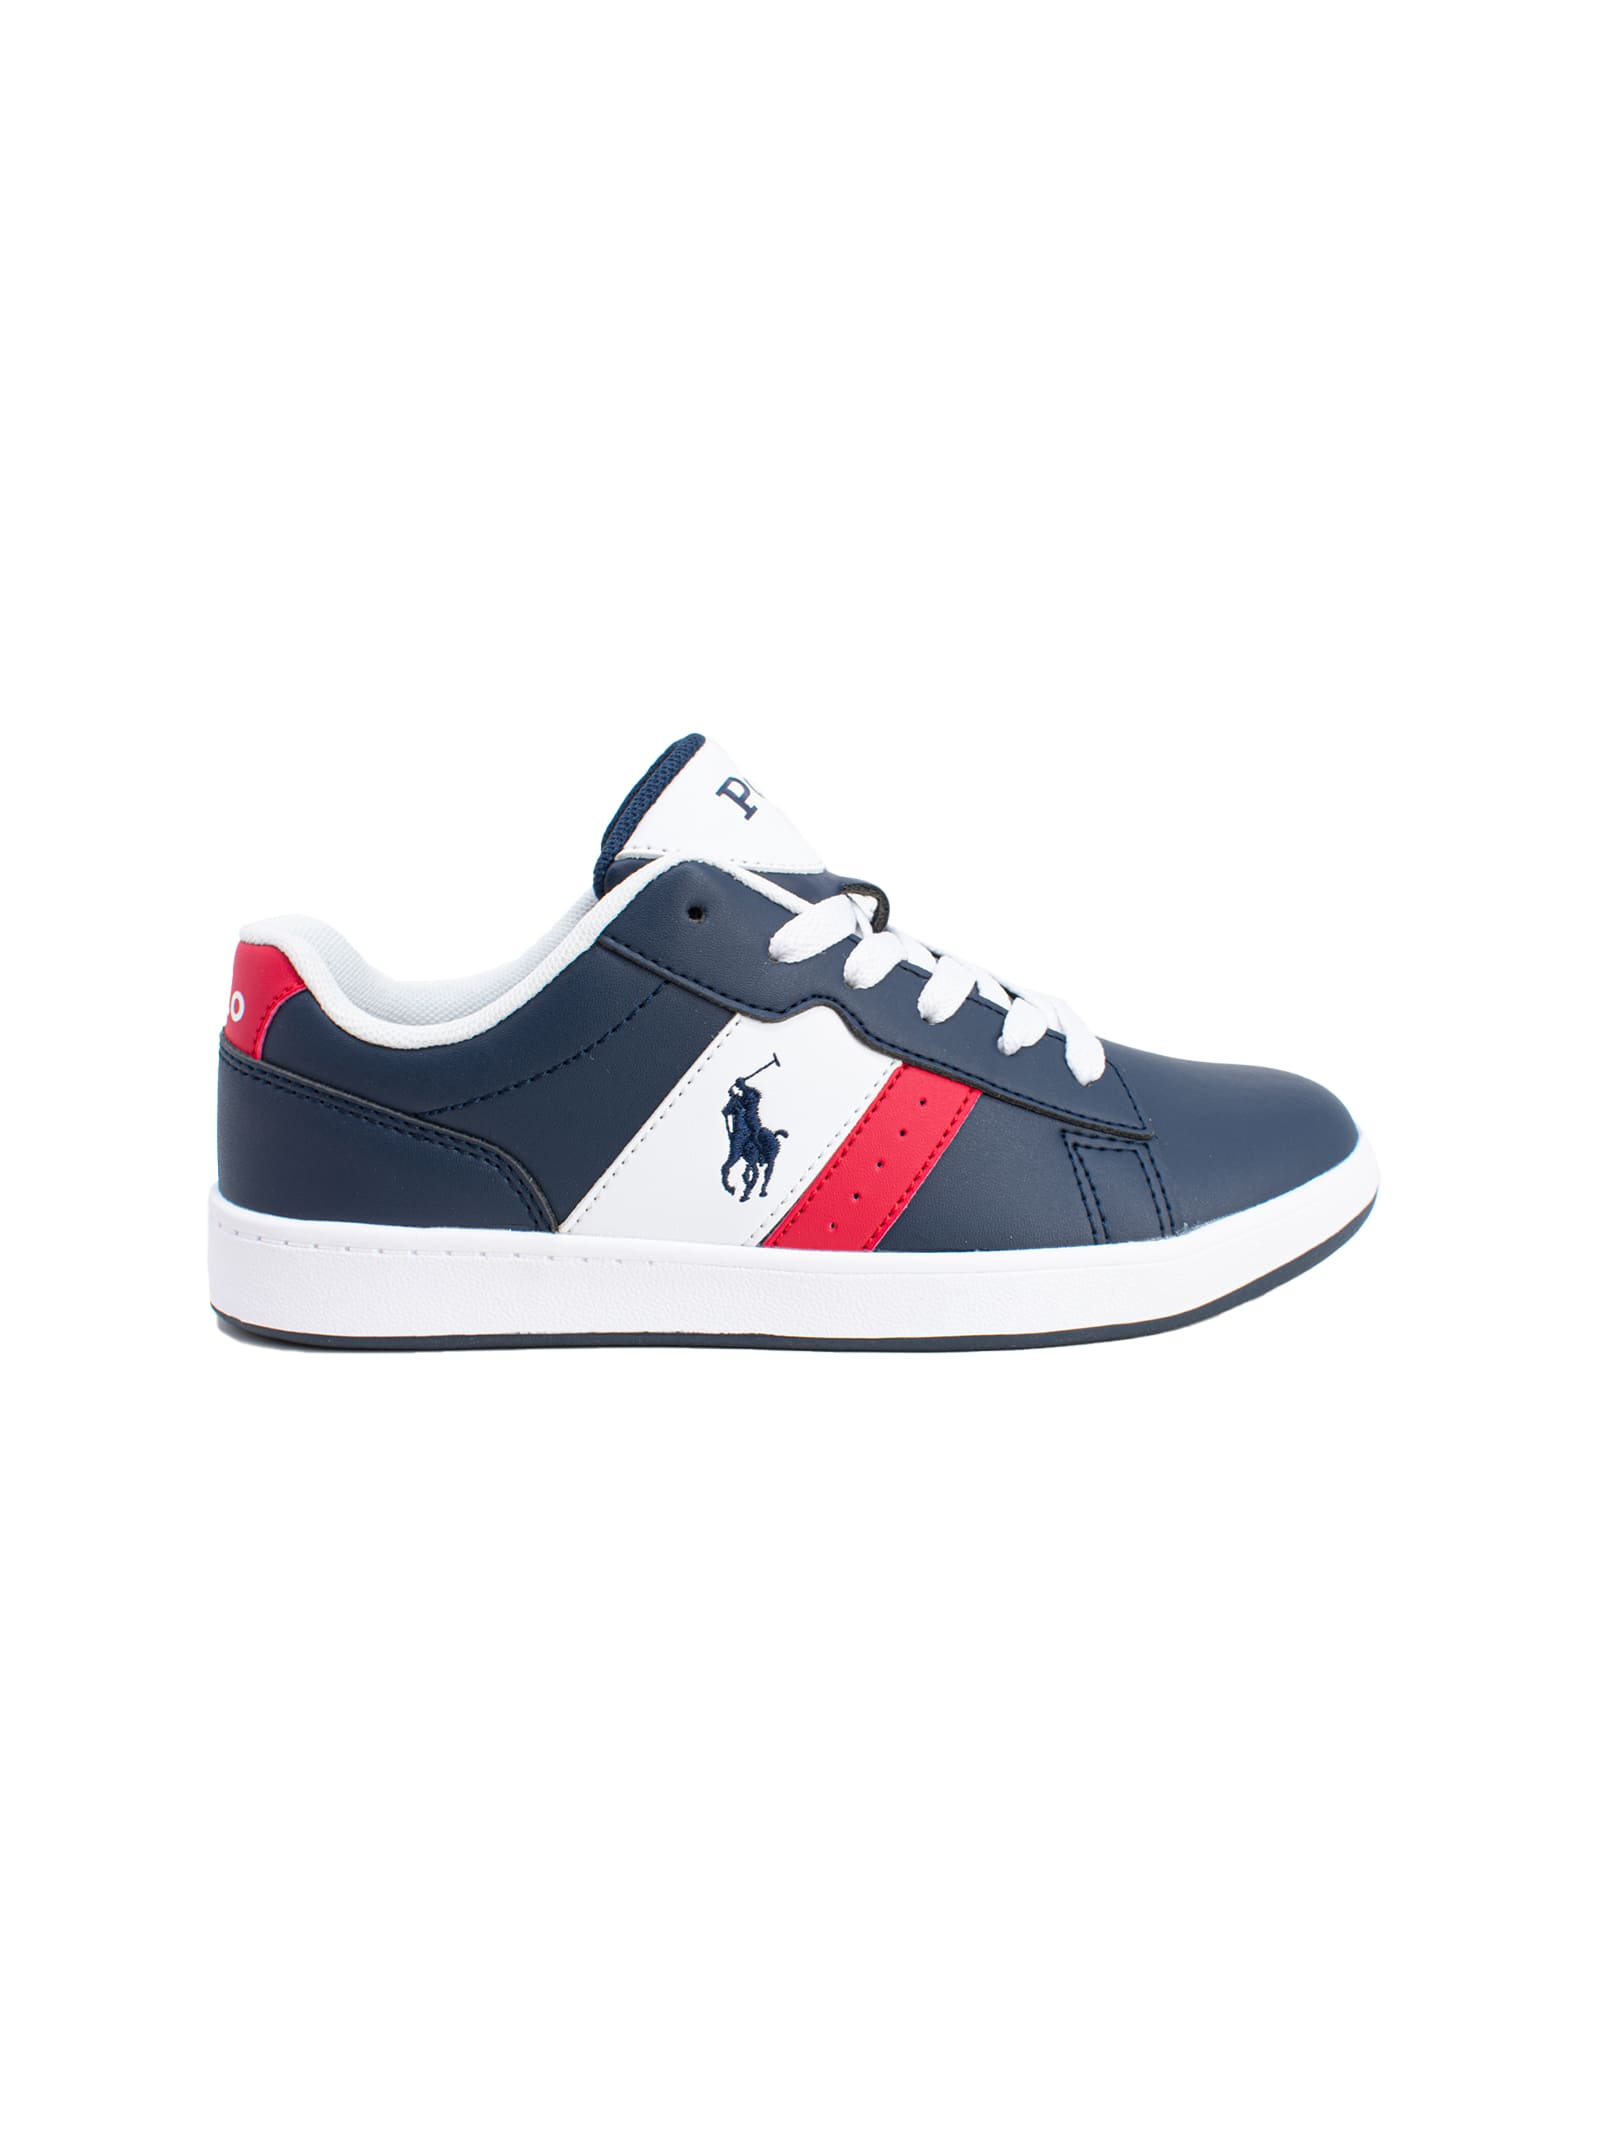 Sneaker Bambino English POLO RALPH LAUREN JUNIOR | Scarpe | 12RF102879NAVY